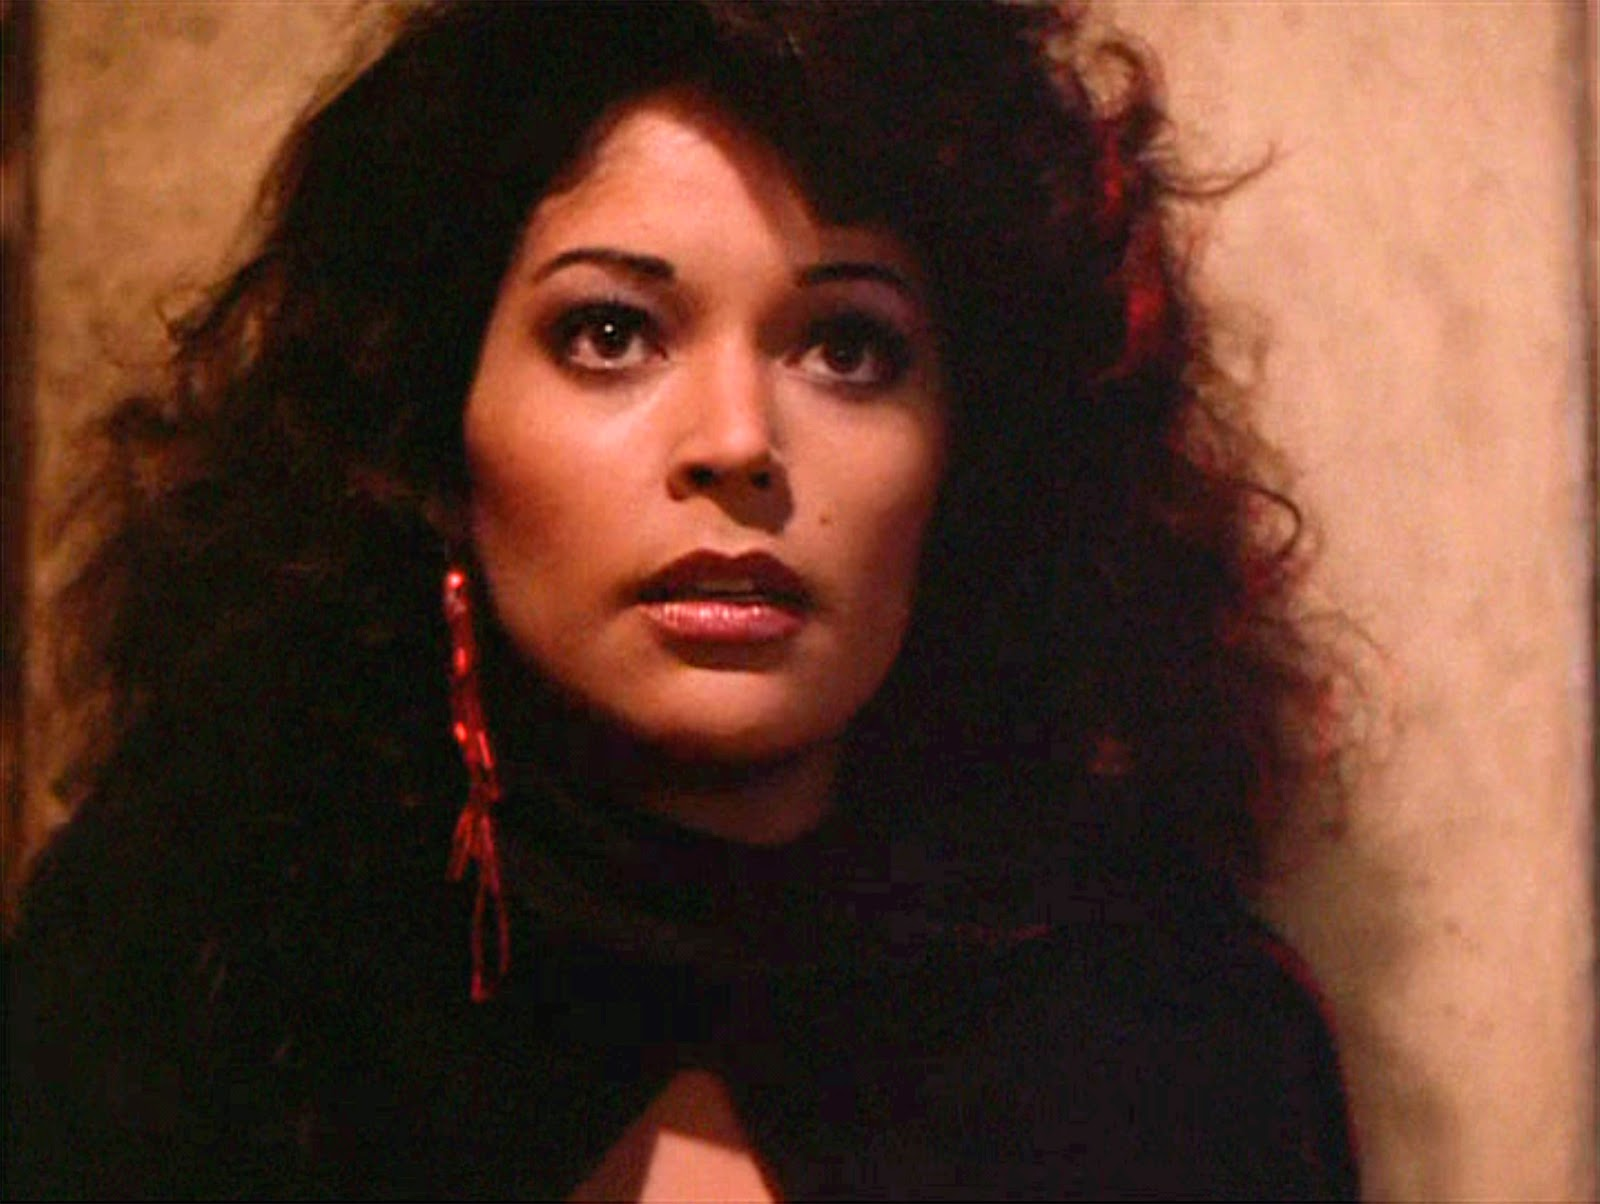 apollonia kotero feetapollonia kotero twitter, apollonia kotero instagram, apollonia kotero 2015, apollonia kotero death, apollonia kotero age, apollonia kotero net worth, apollonia kotero daughter, apollonia kotero purple rain, apollonia kotero now, apollonia kotero feet, apollonia kotero 2016, apollonia kotero ethnicity, apollonia kotero facebook, apollonia kotero measurements